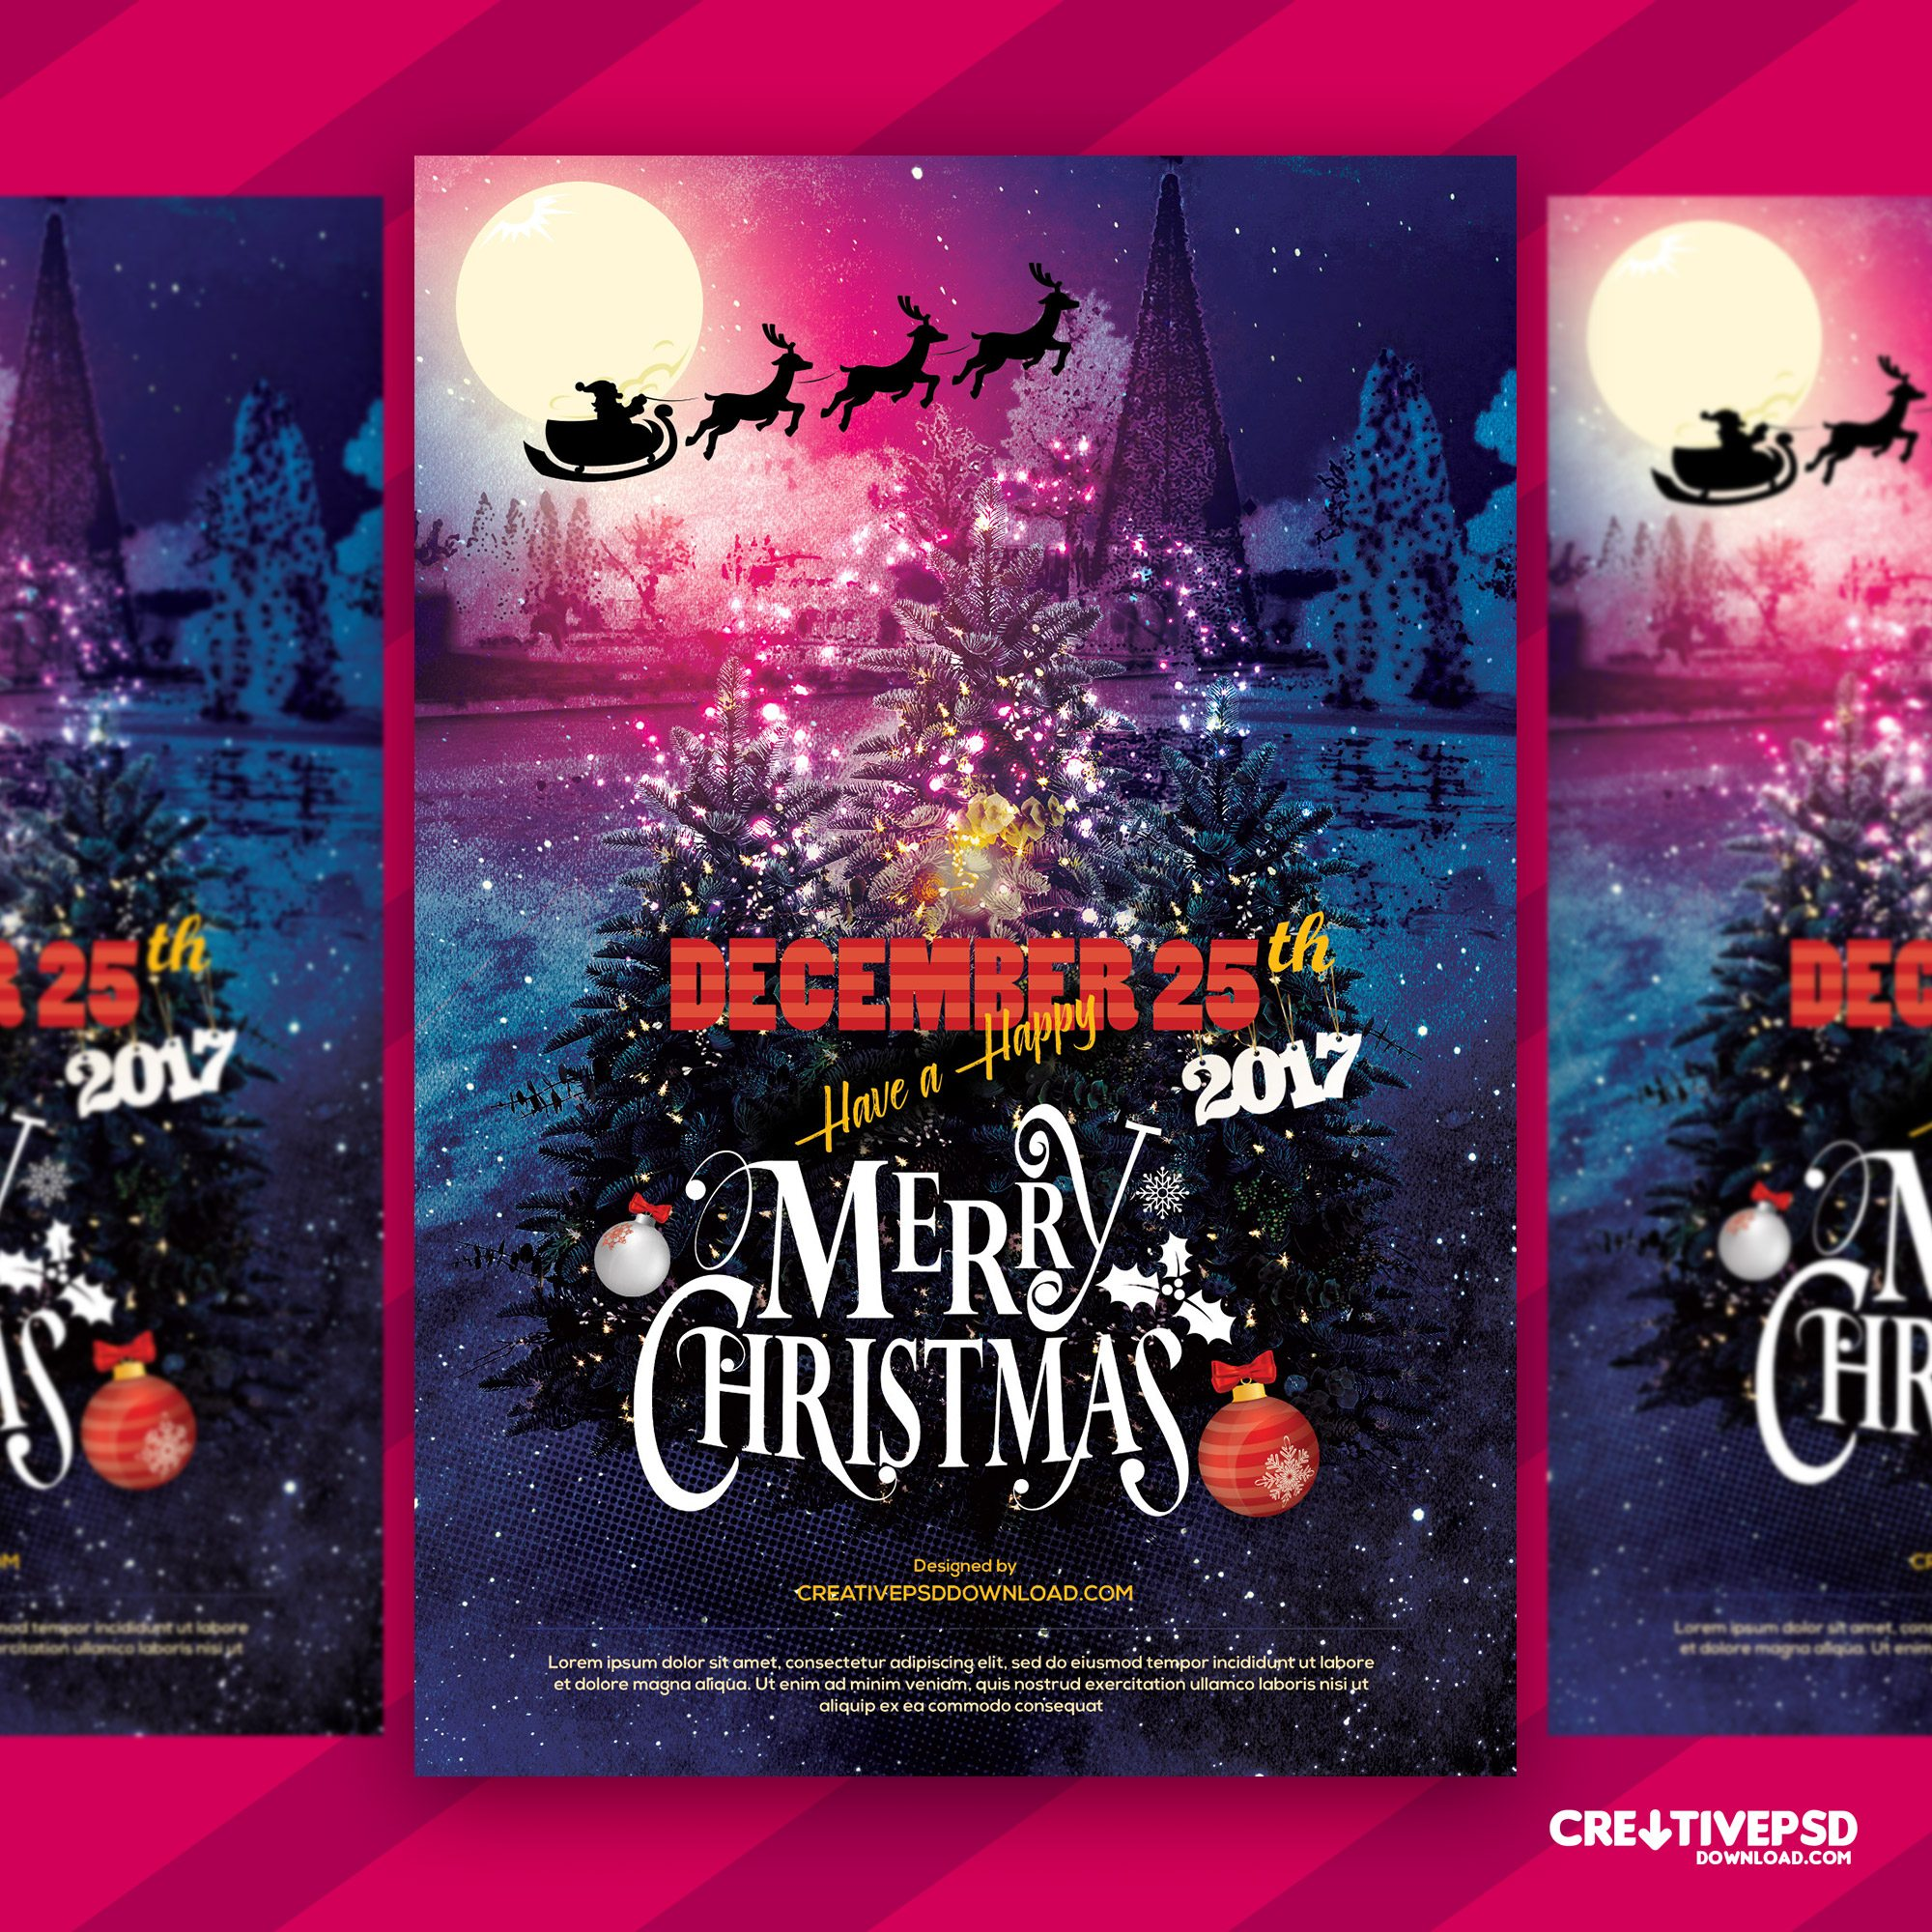 Merry Christmas Wishing Flyer Free PSD